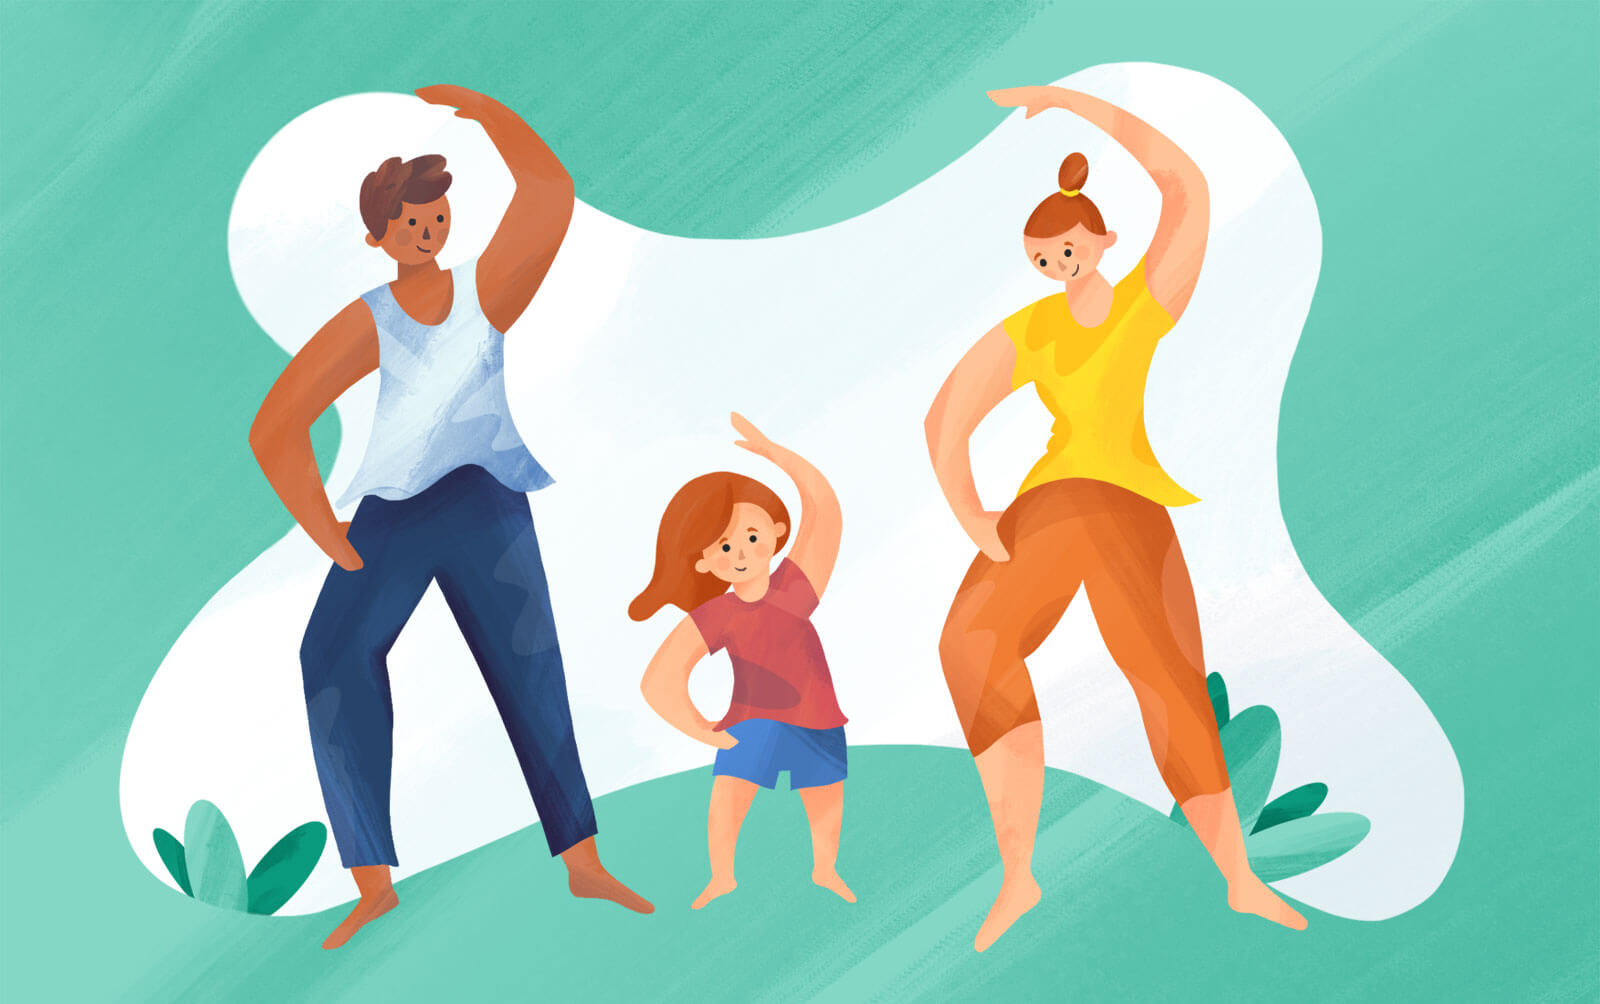 Family staying healthy with activity